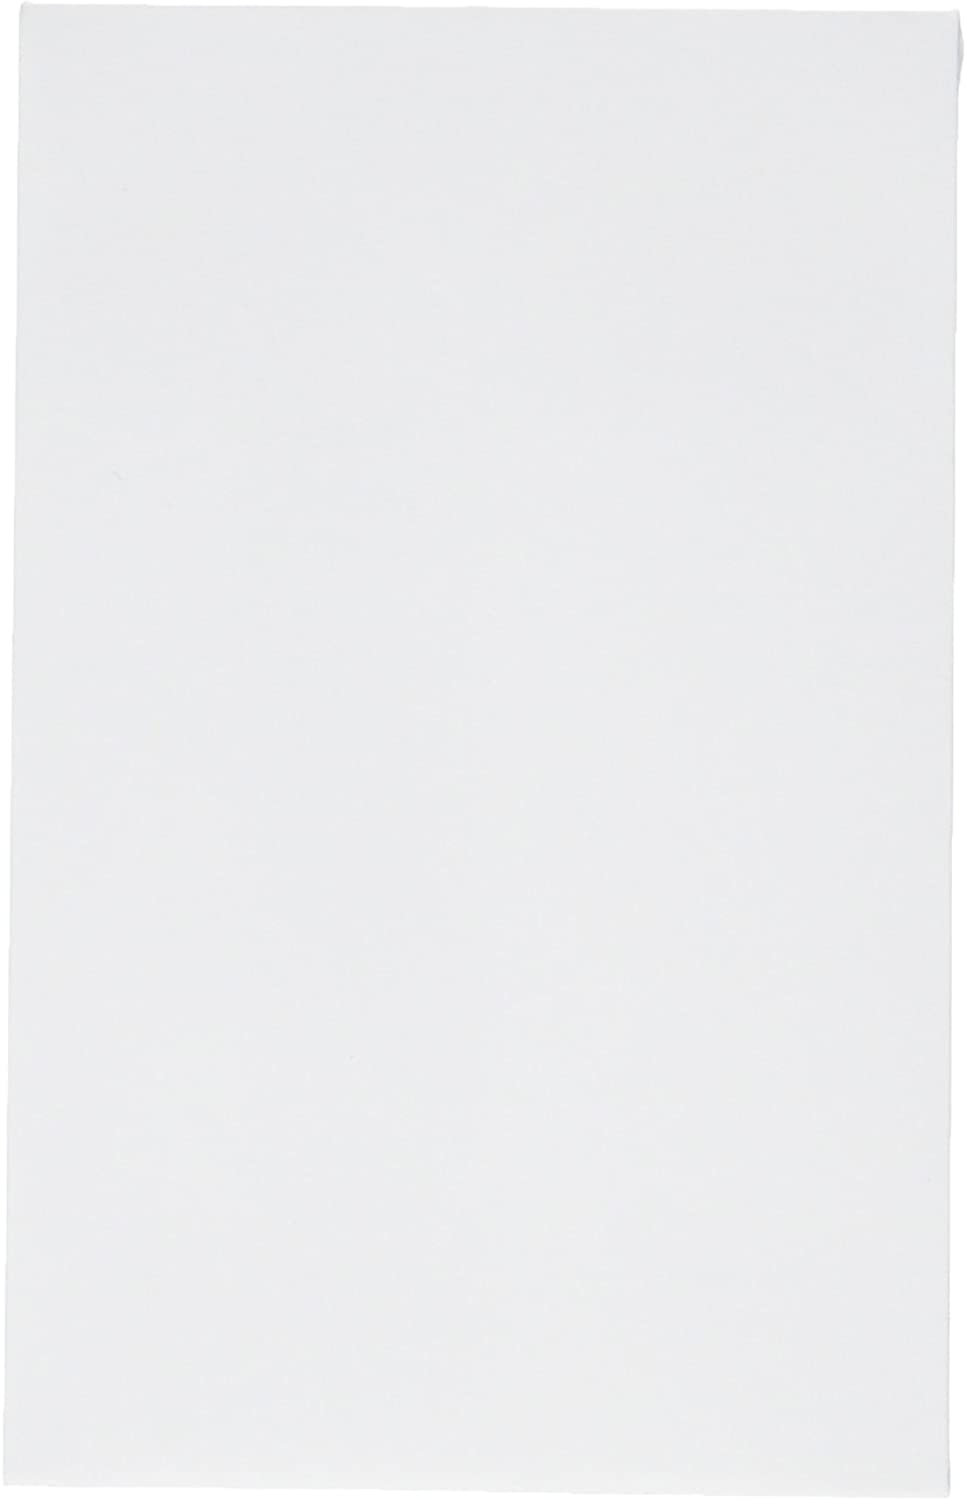 LUXPaper Coin service Envelopes 24lb Bright White 1 x 67% OFF of fixed price 4-Inch 2- 3 2